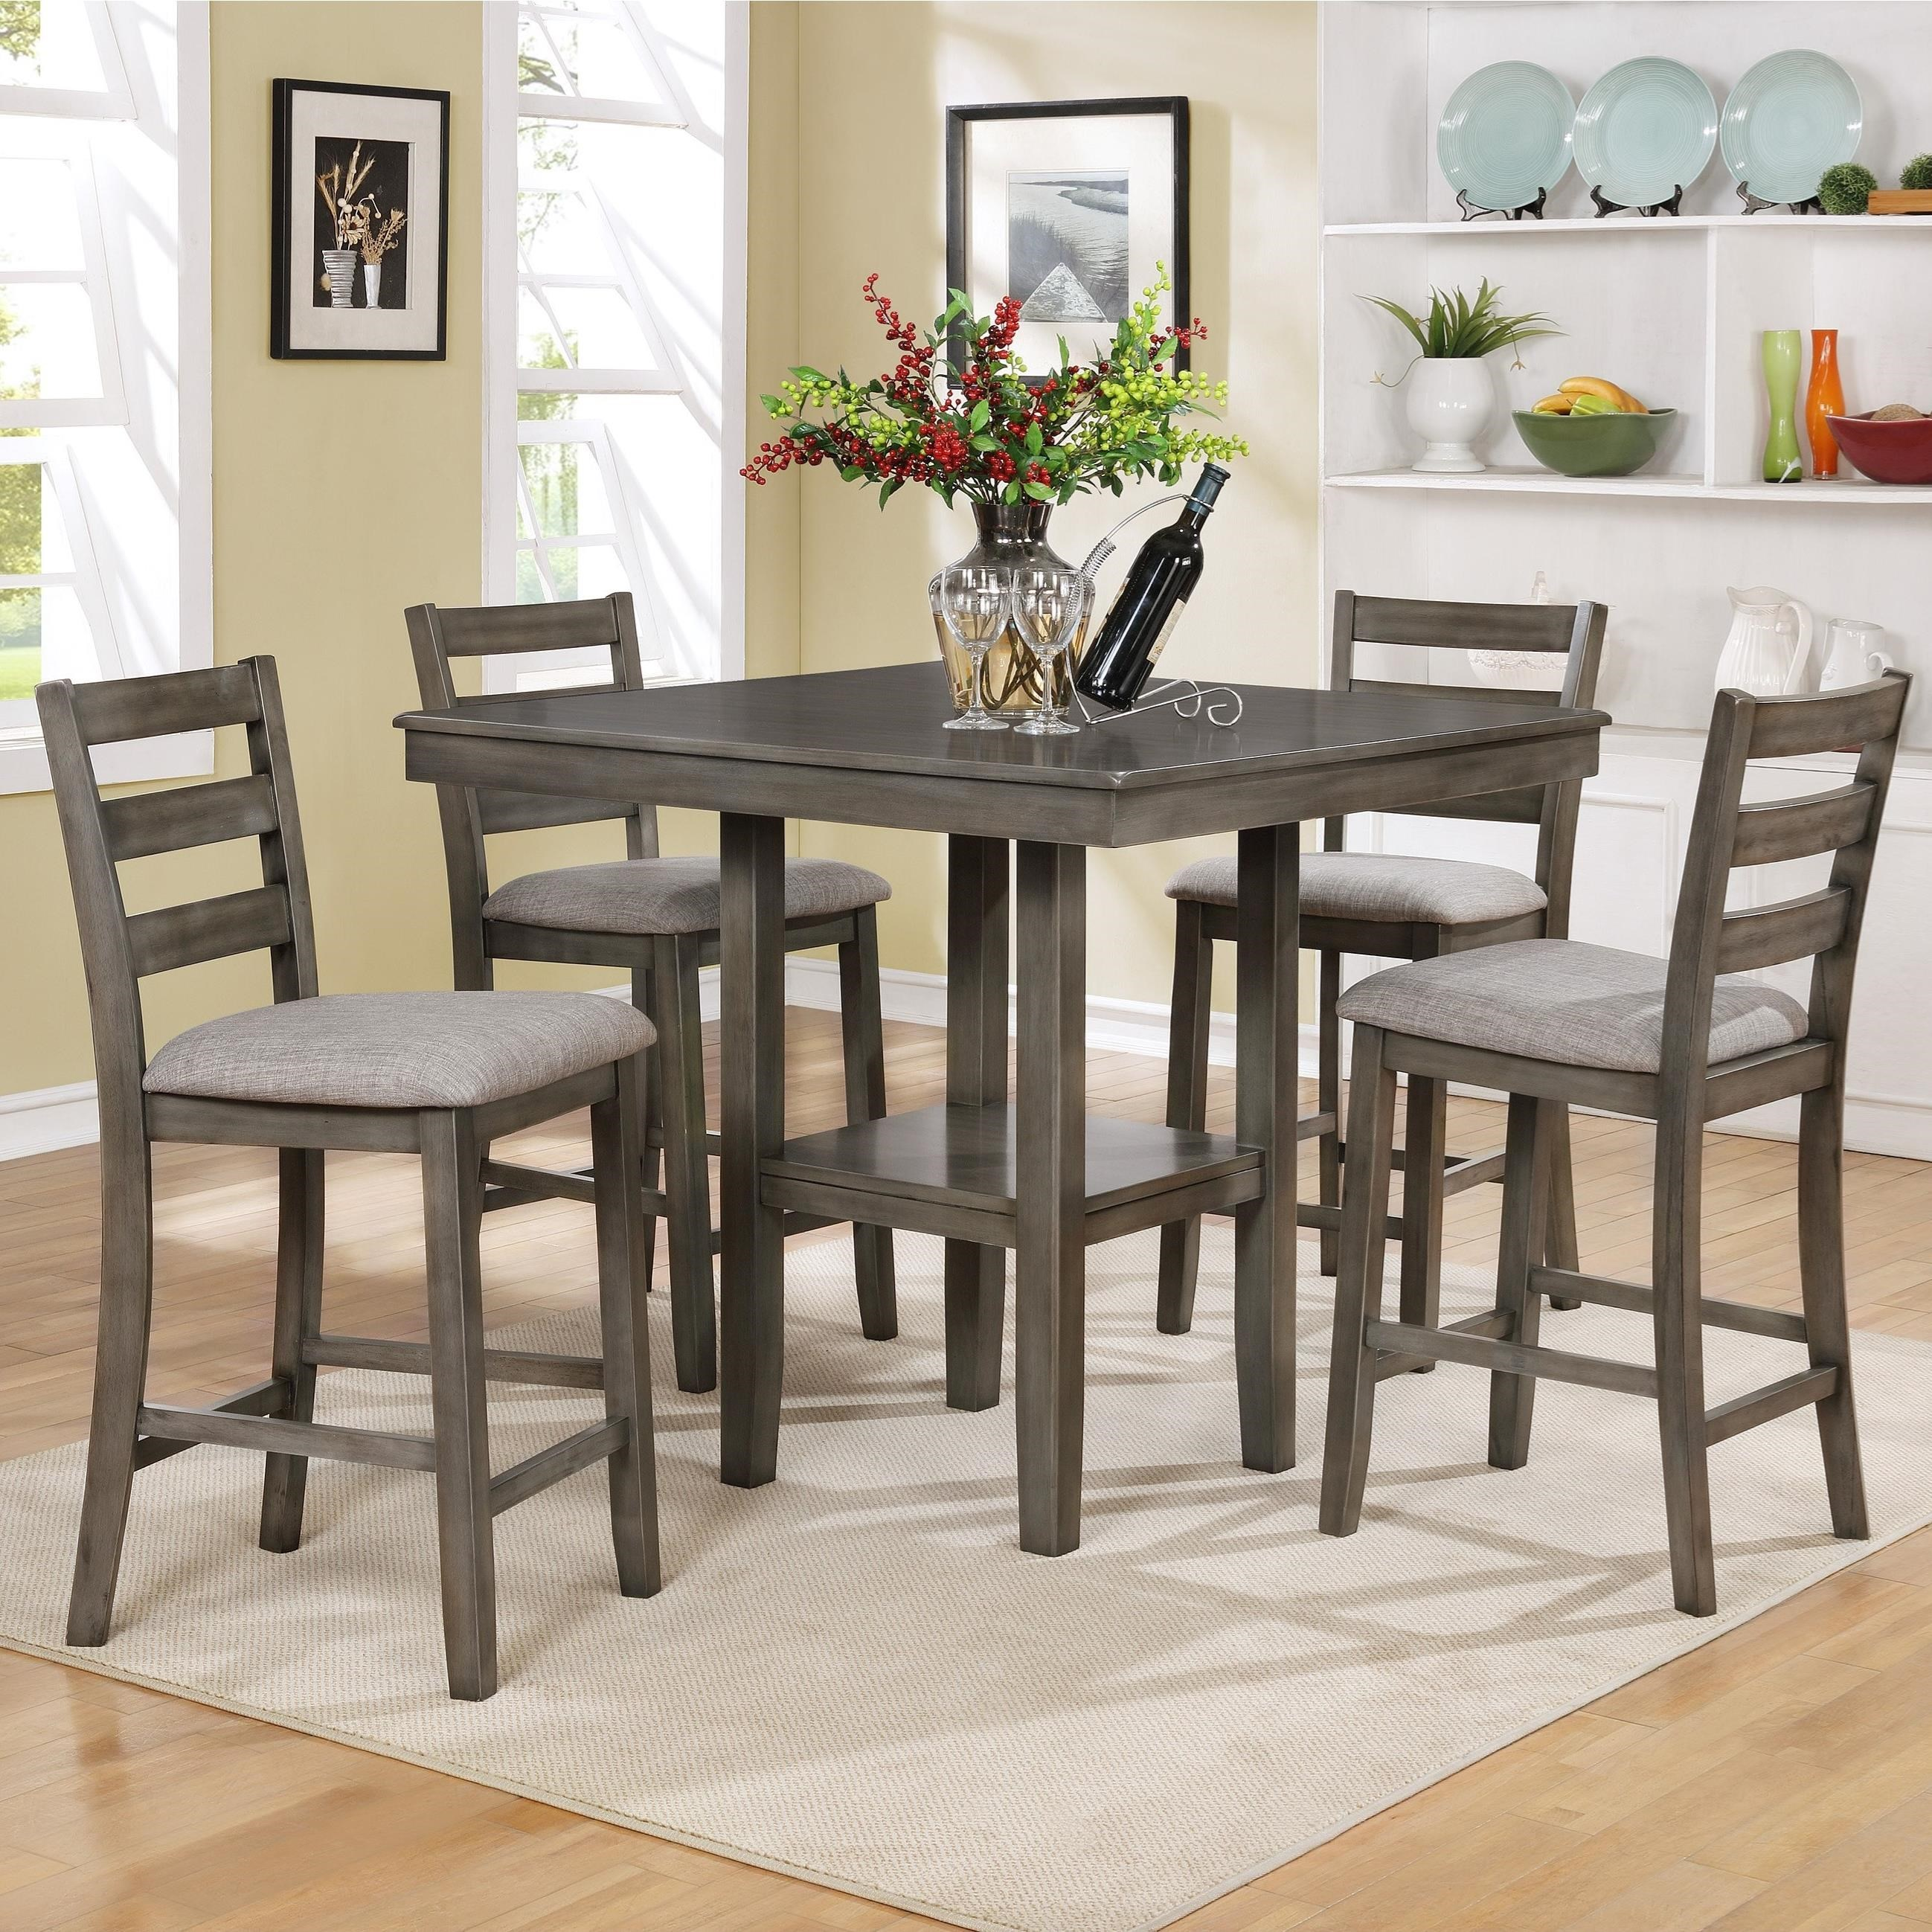 Crown Mark Tahoe5 Piece Counter Height Table and Chairs Set ...  sc 1 st  Royal Furniture & Crown Mark Tahoe 5 Piece Counter Height Table and Chairs Set | Royal ...